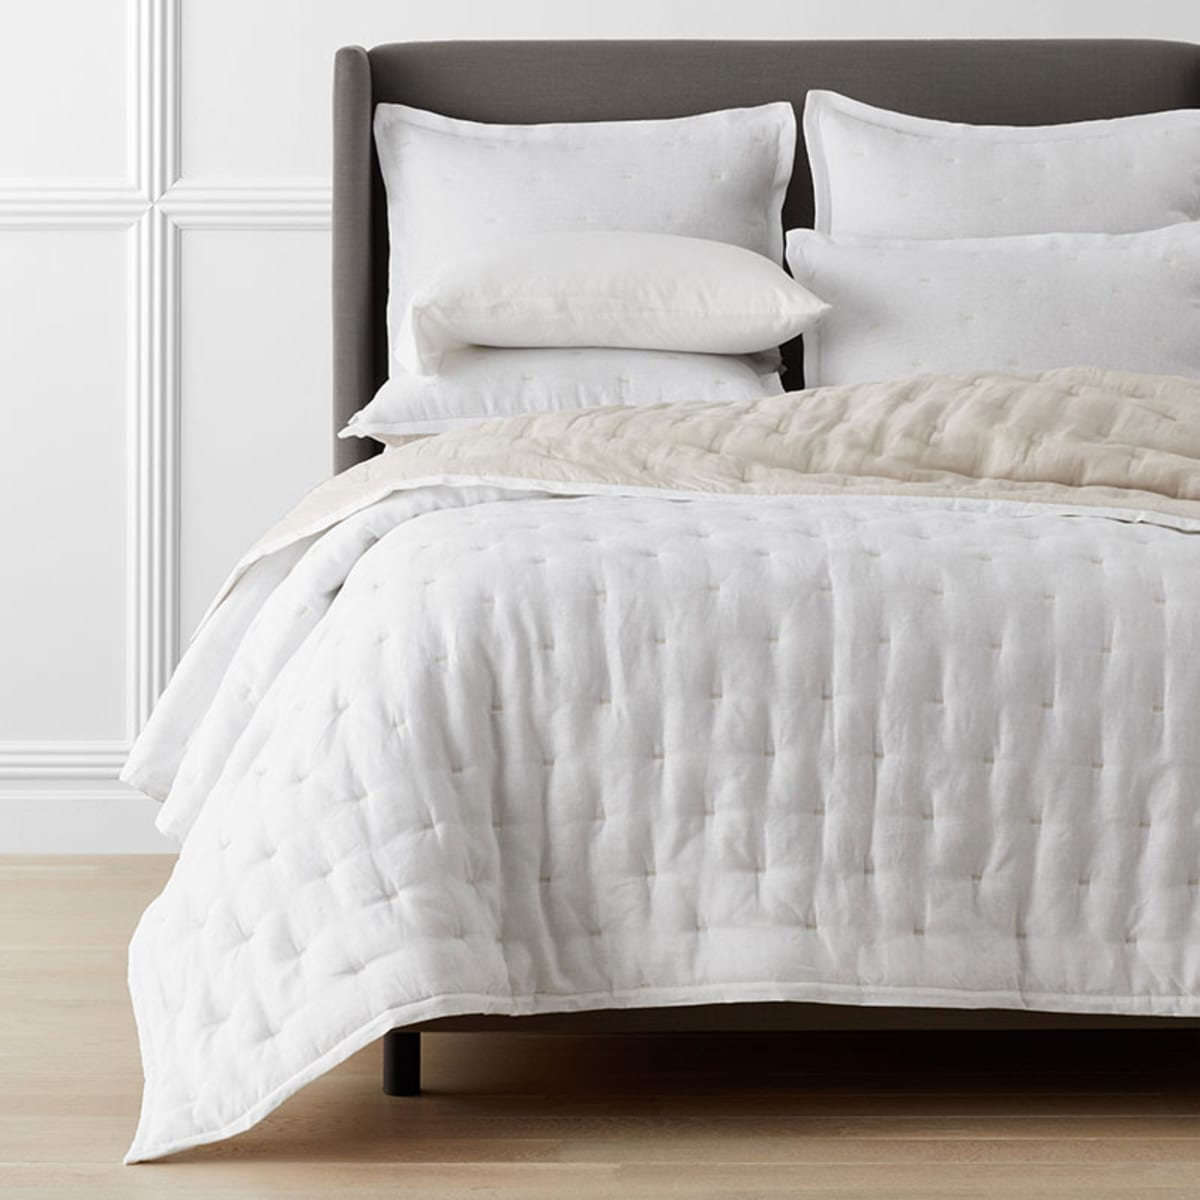 Legends Hotel™ Reversible Relaxed Linen Quilt | The Company Store